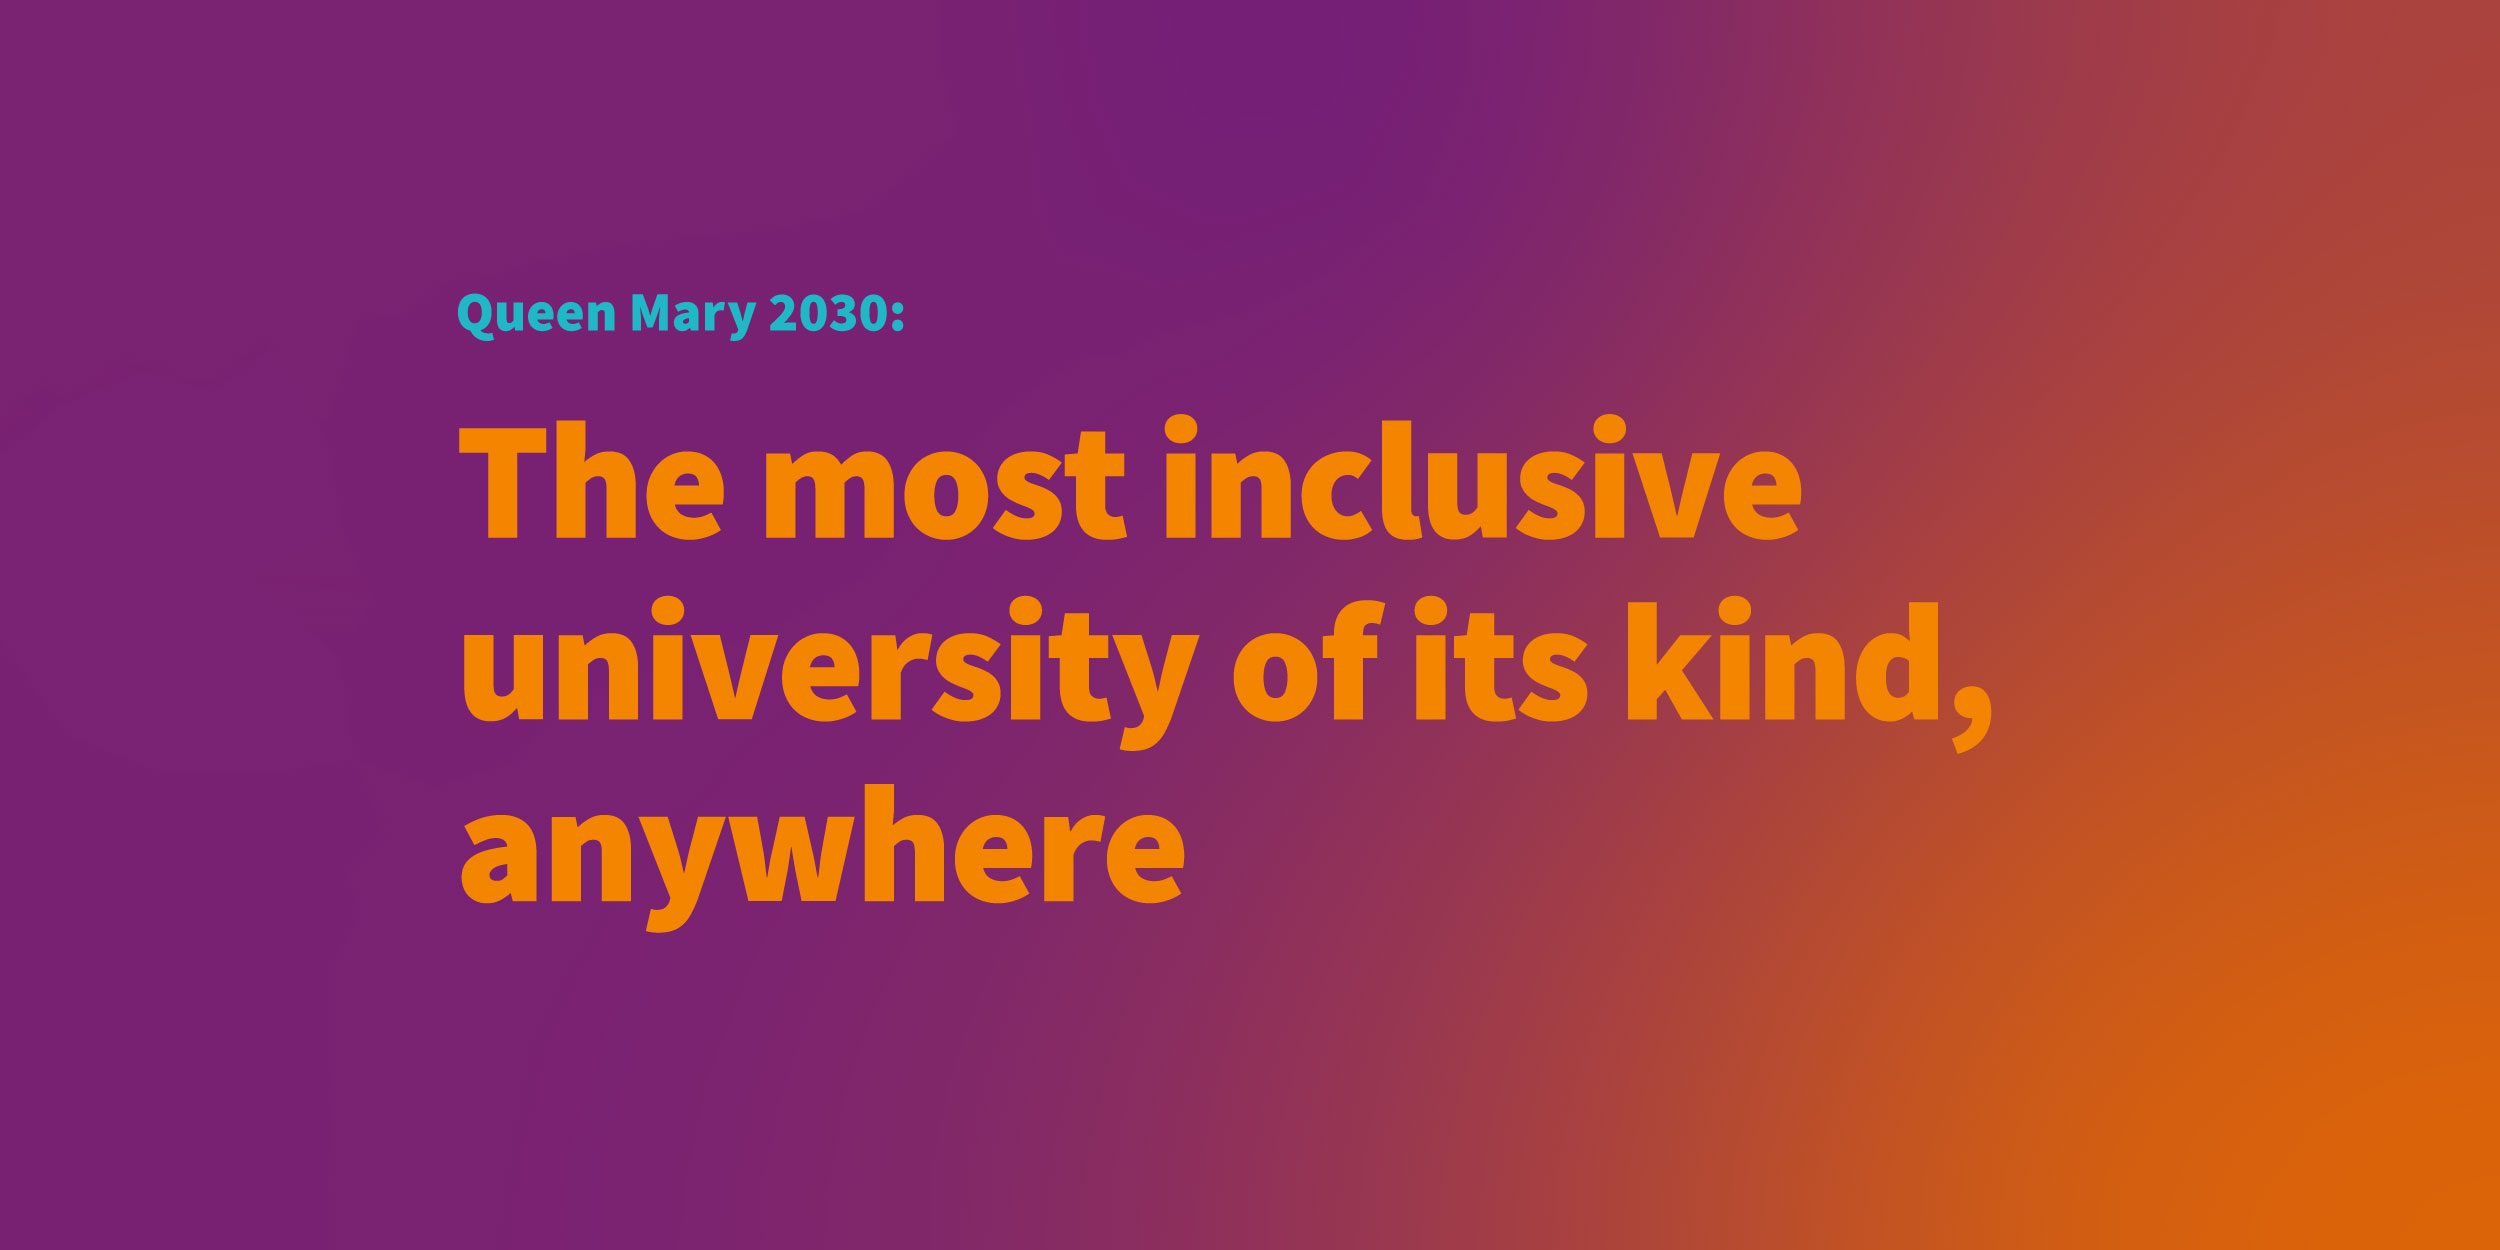 Queen Mary 2030: The most inclusive university of its kind, anywhere.